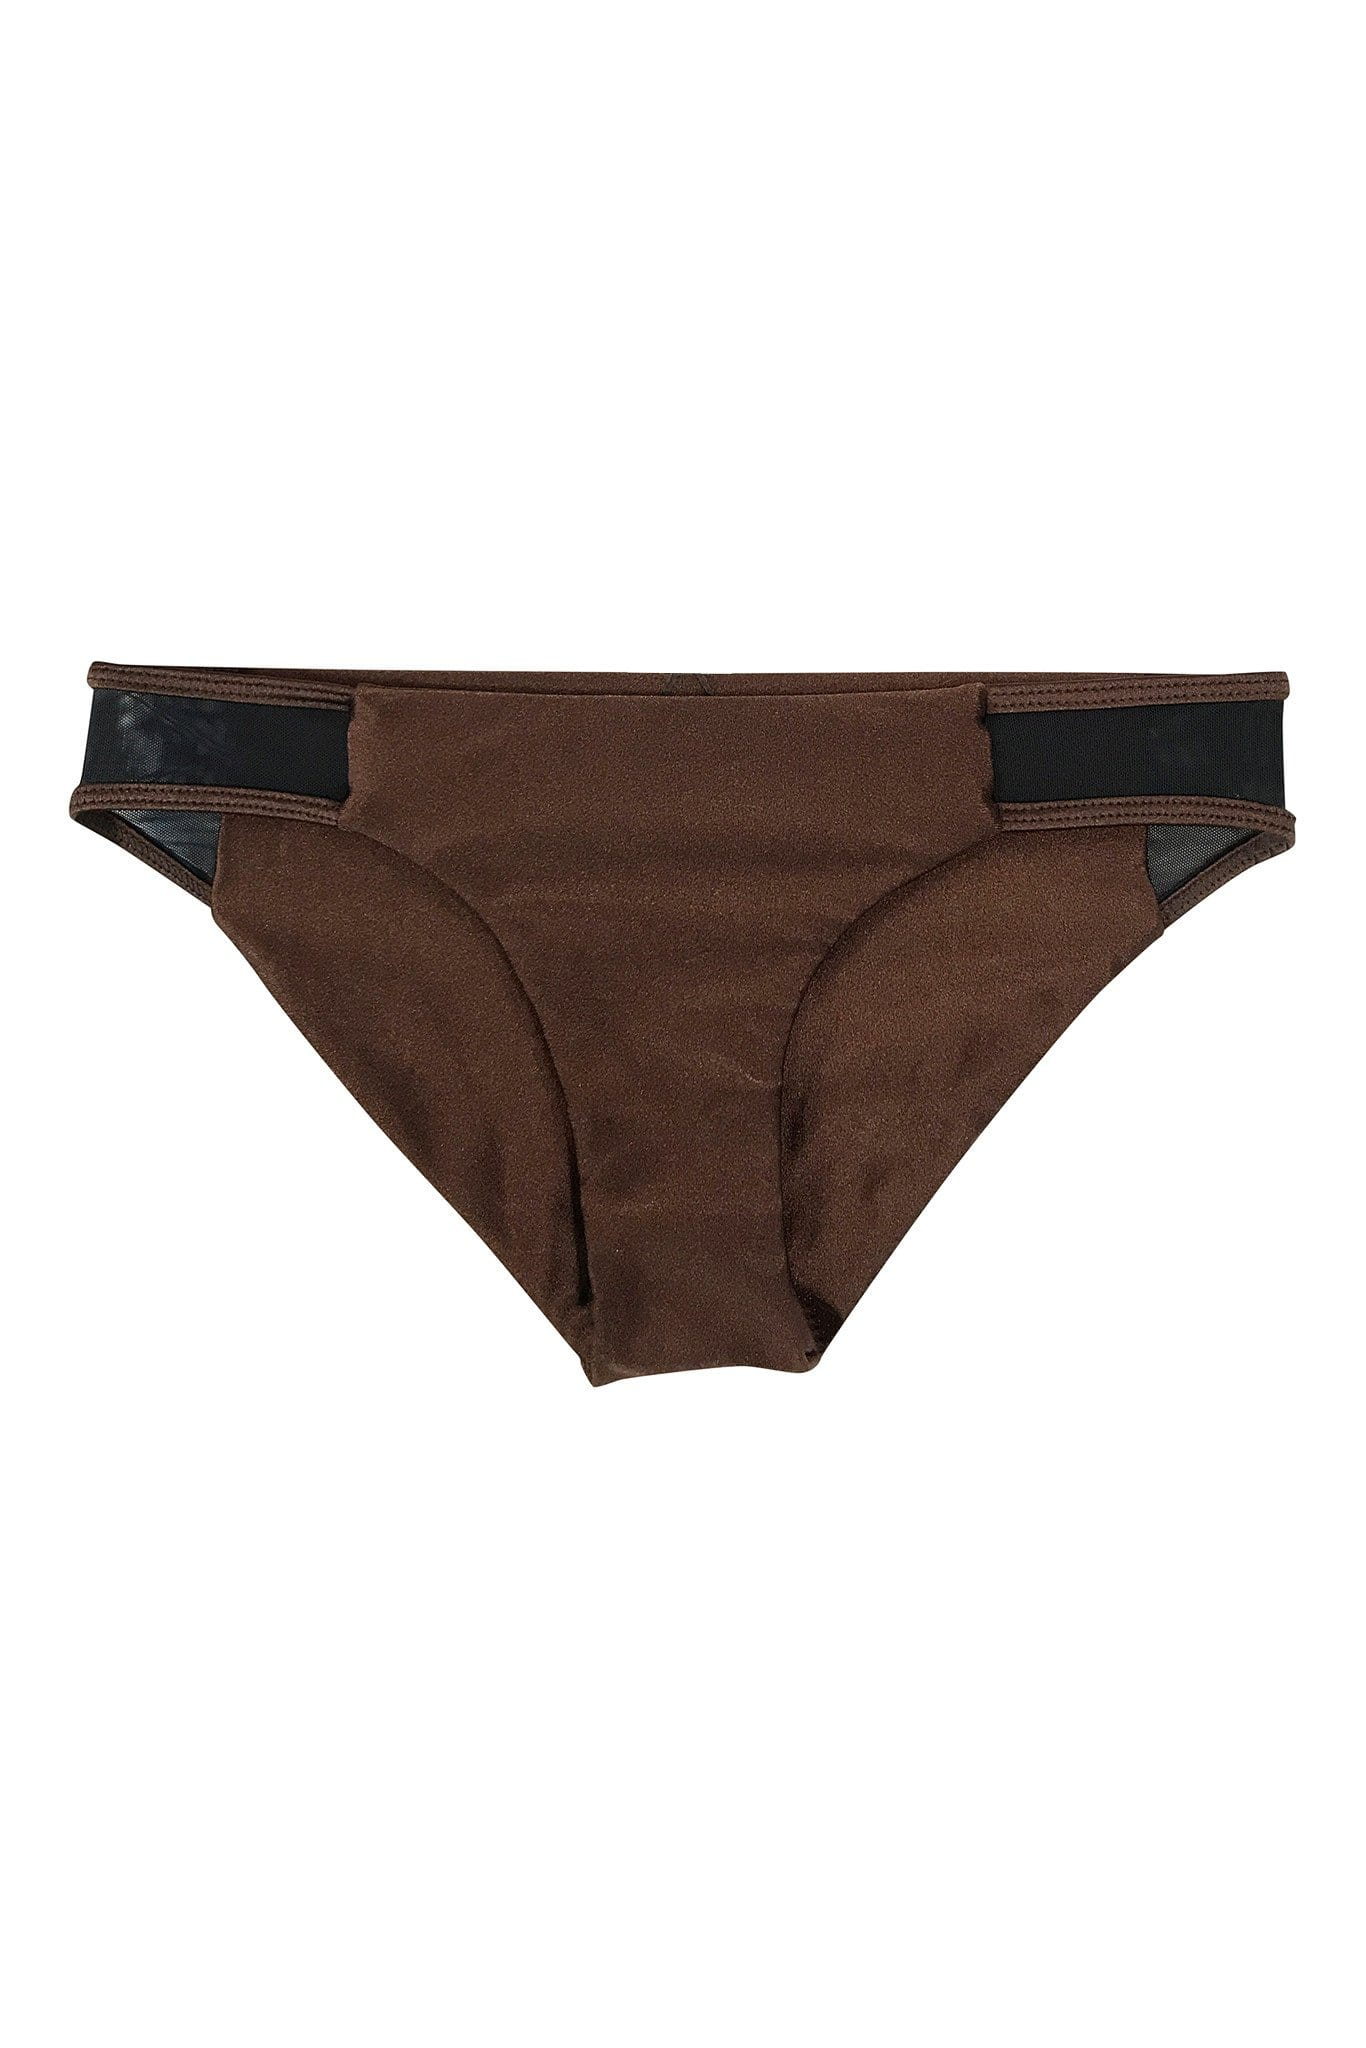 *SALE* Kaili Bottom Chocolate Shimmer